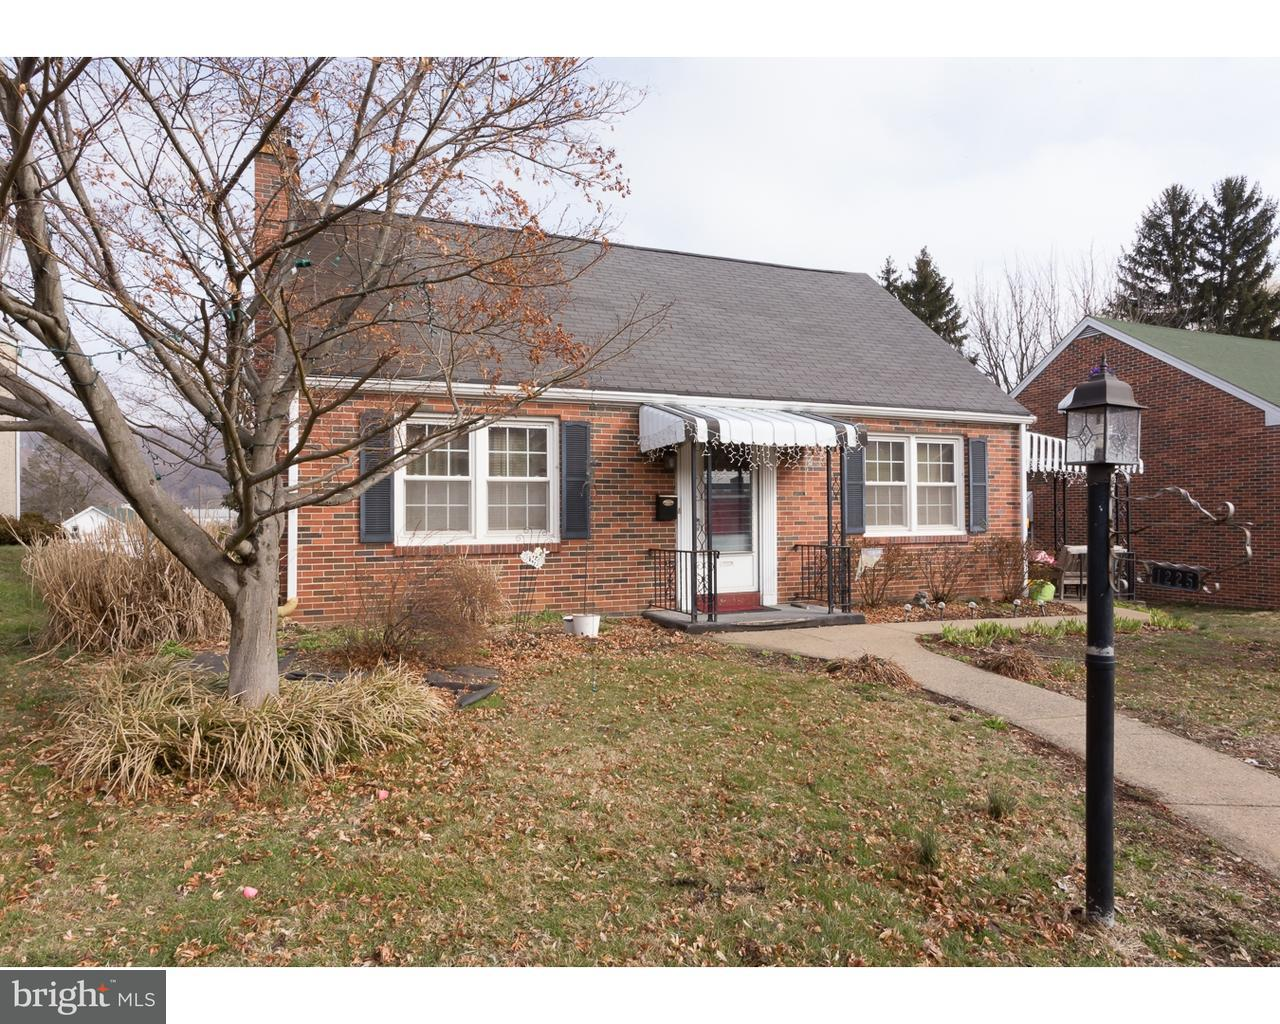 1225 OLIVE ST, COATESVILLE - Listed at $169,900, COATESVILLE